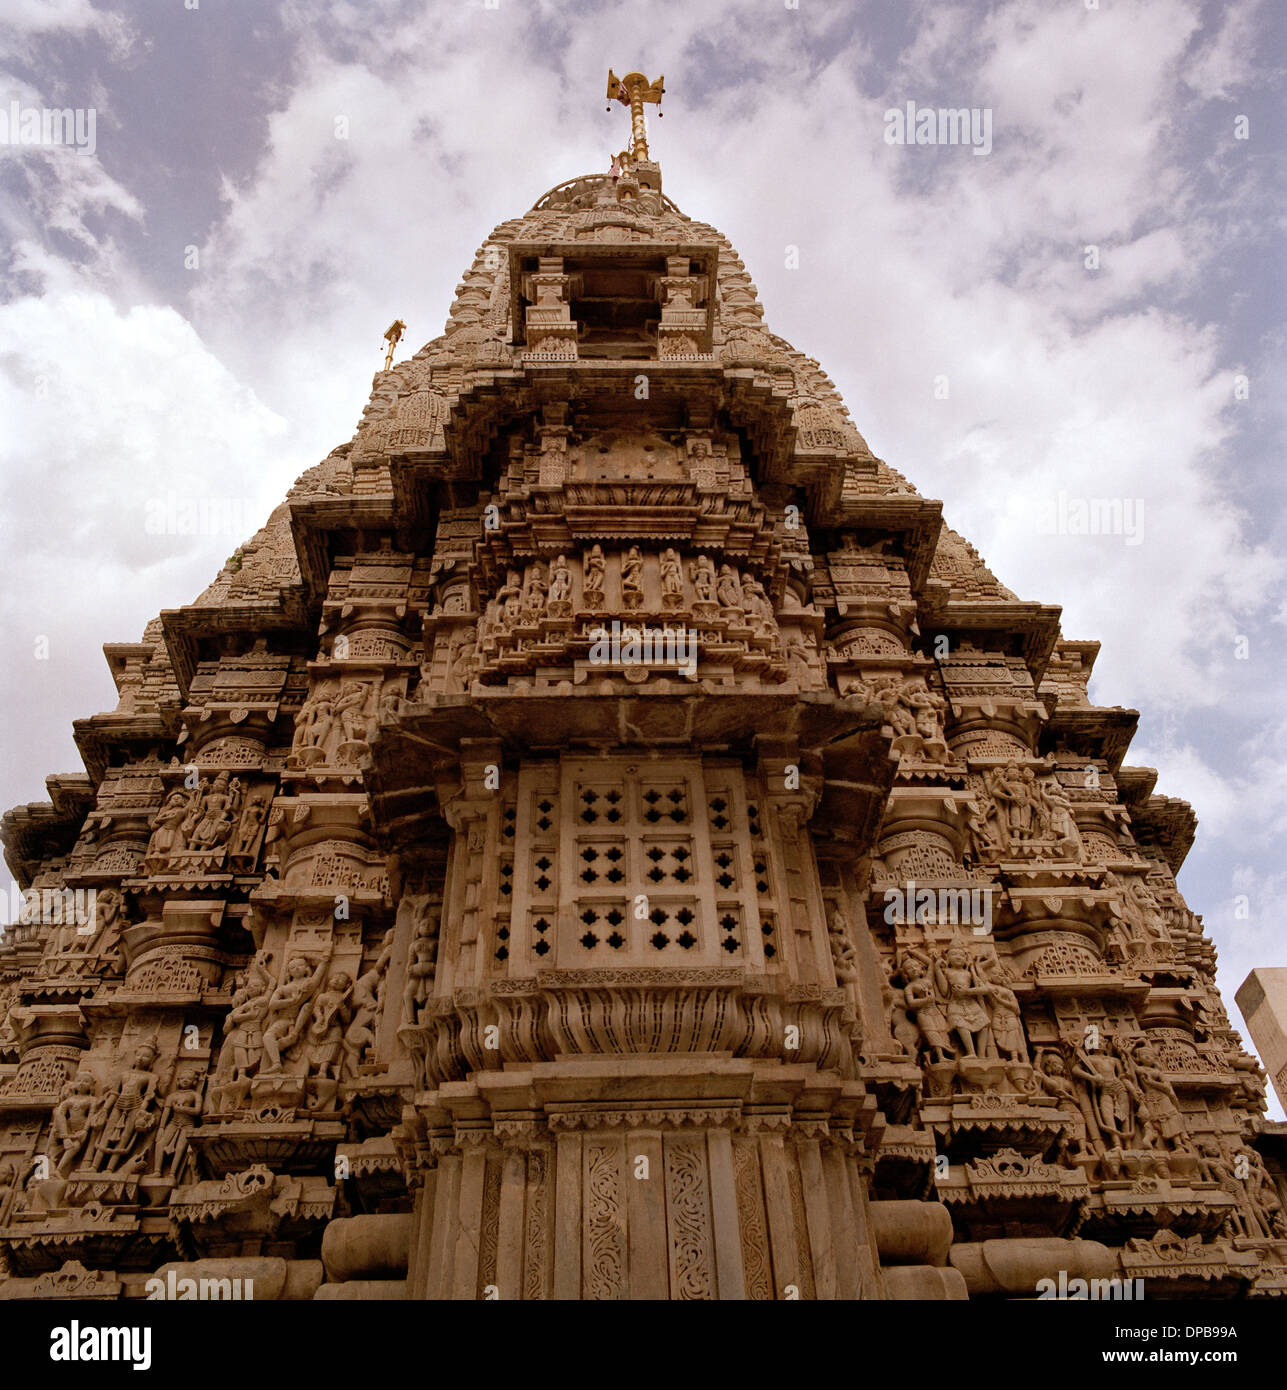 Jagdish Temple In Udaipur Rajasthan India South Asia Hindu Religion Prayer Culture History Travel Architecture Building Art Sculpture